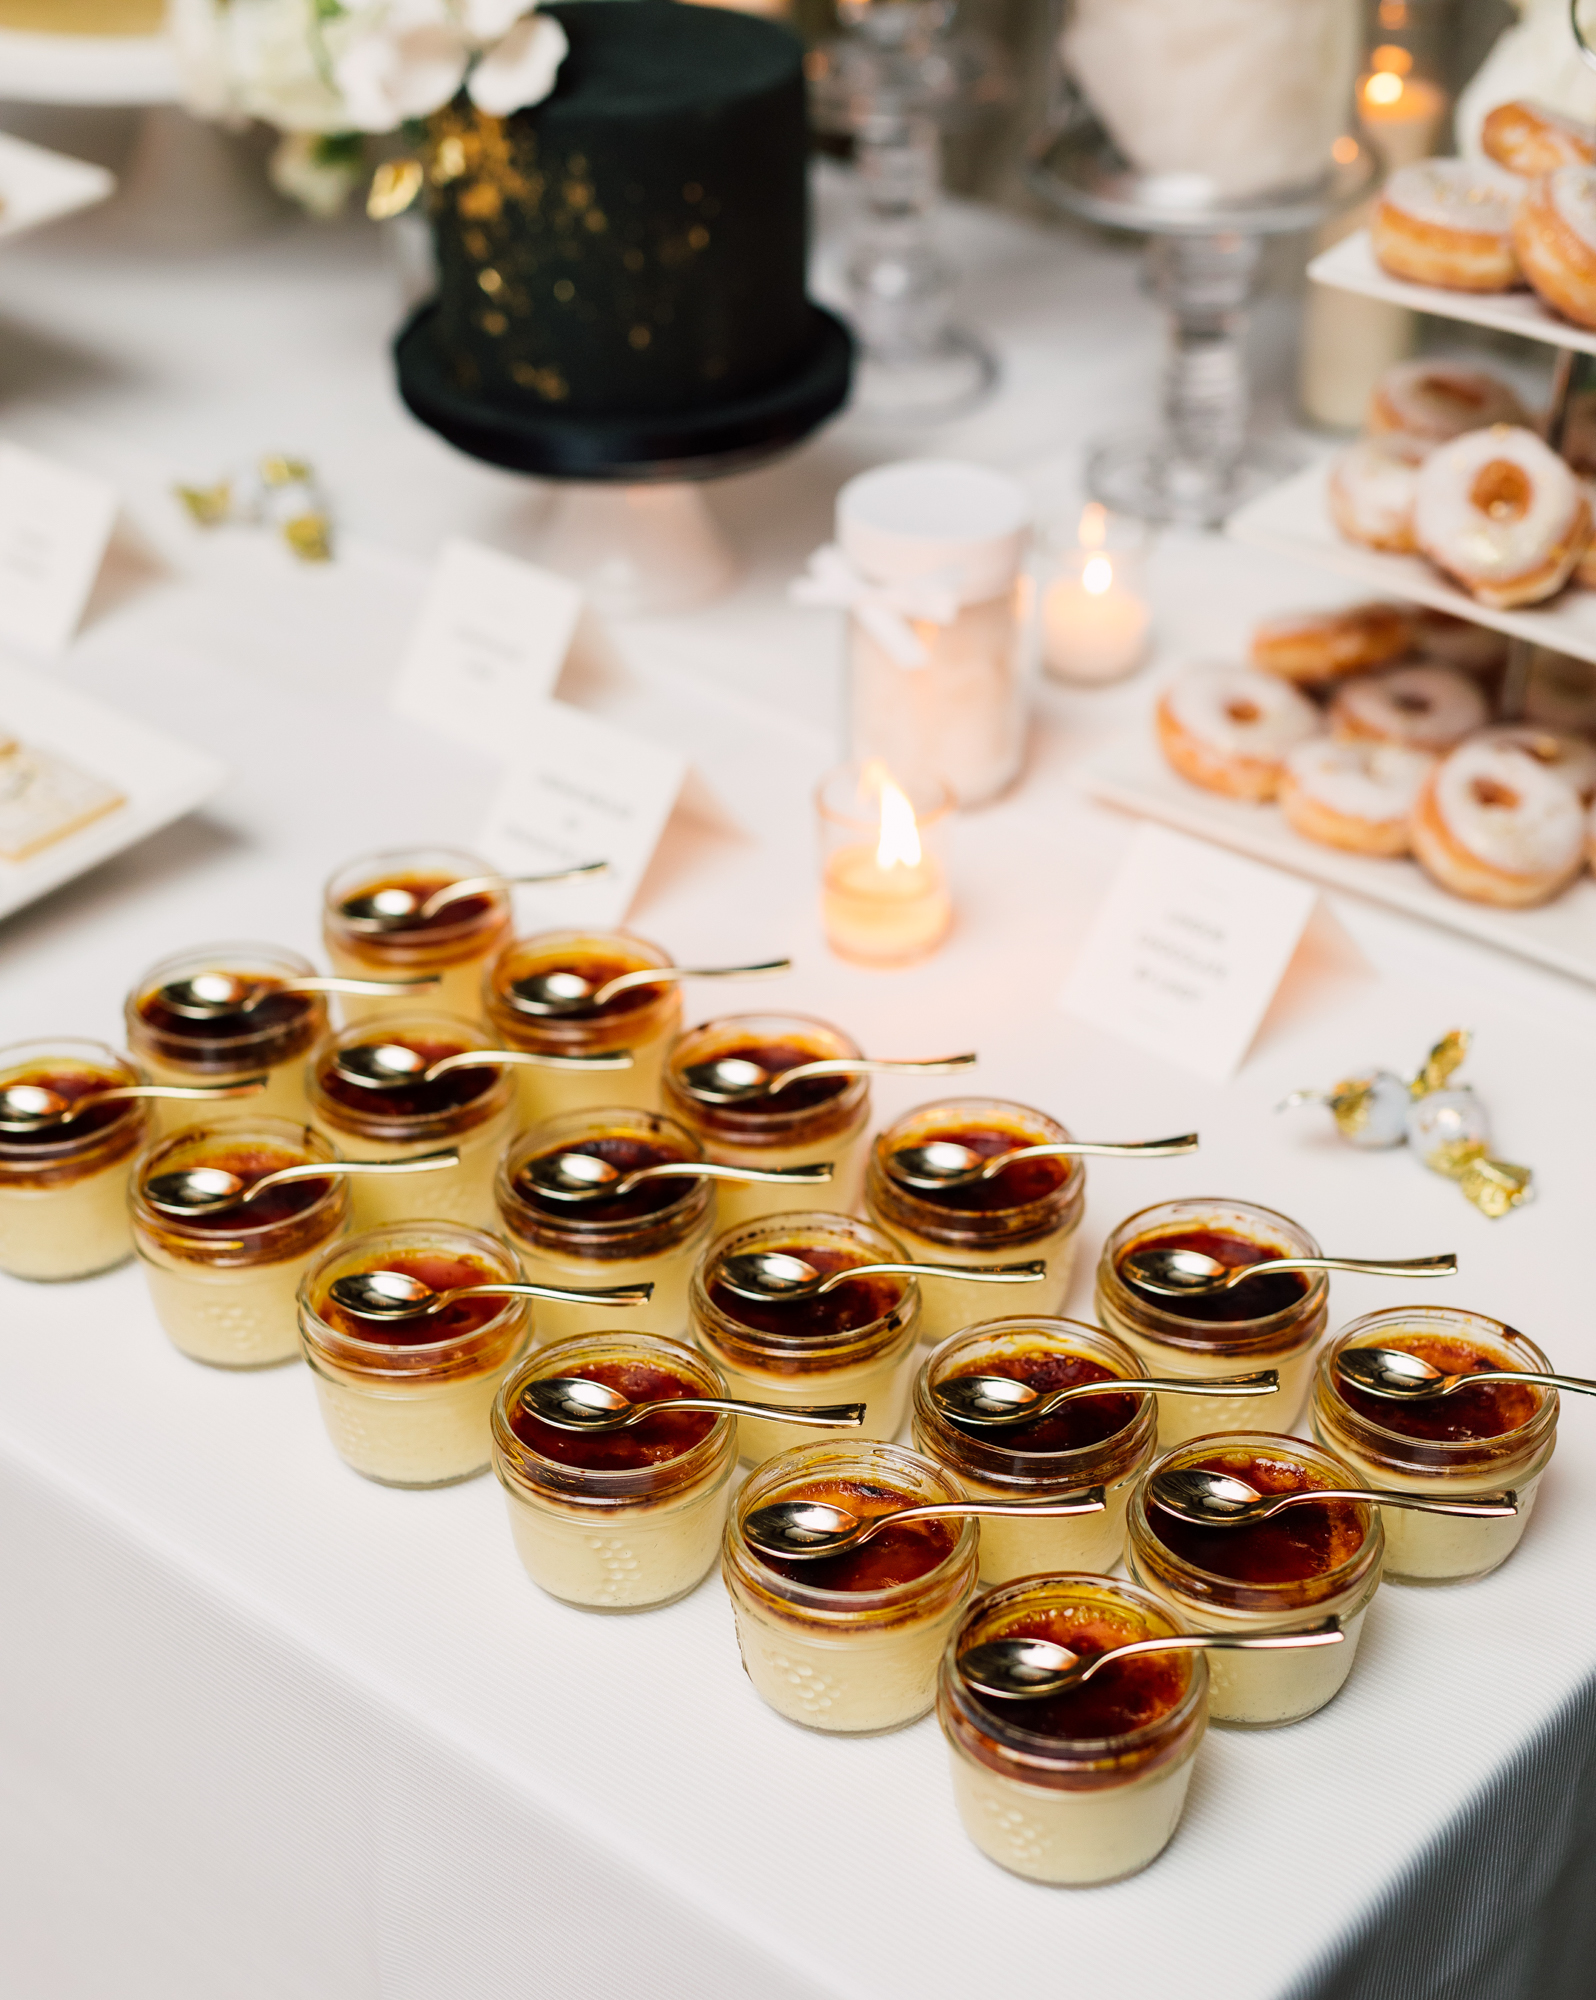 truffle cake and pastry wedding desserts